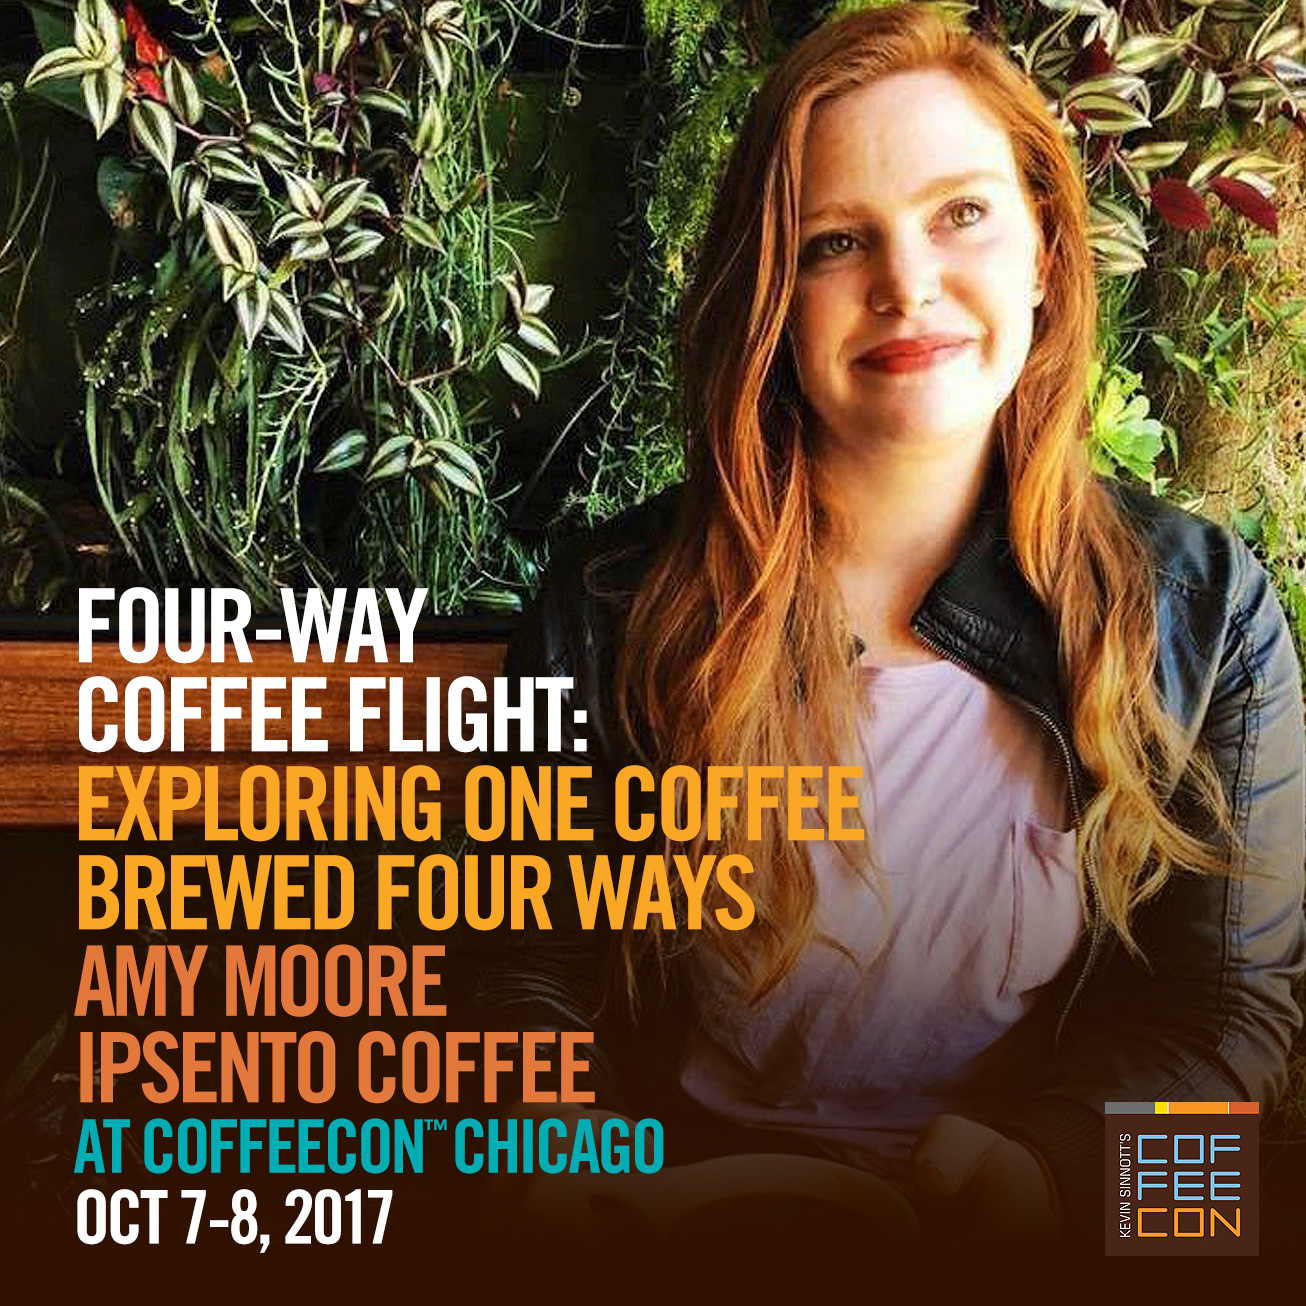 Four-Way Coffee Flight - Exploring one coffee brewed with four different methods with Amy Moore